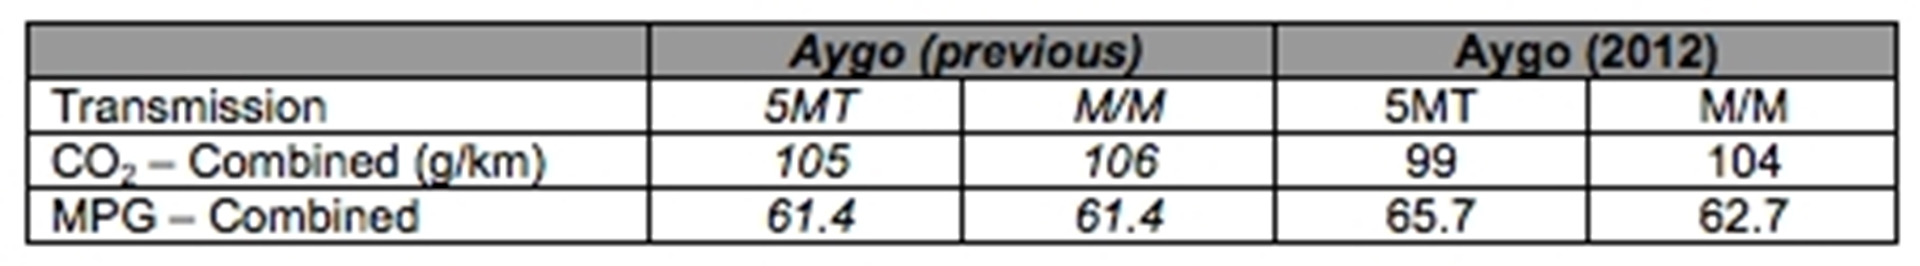 Toyota Aygo Fire-stats